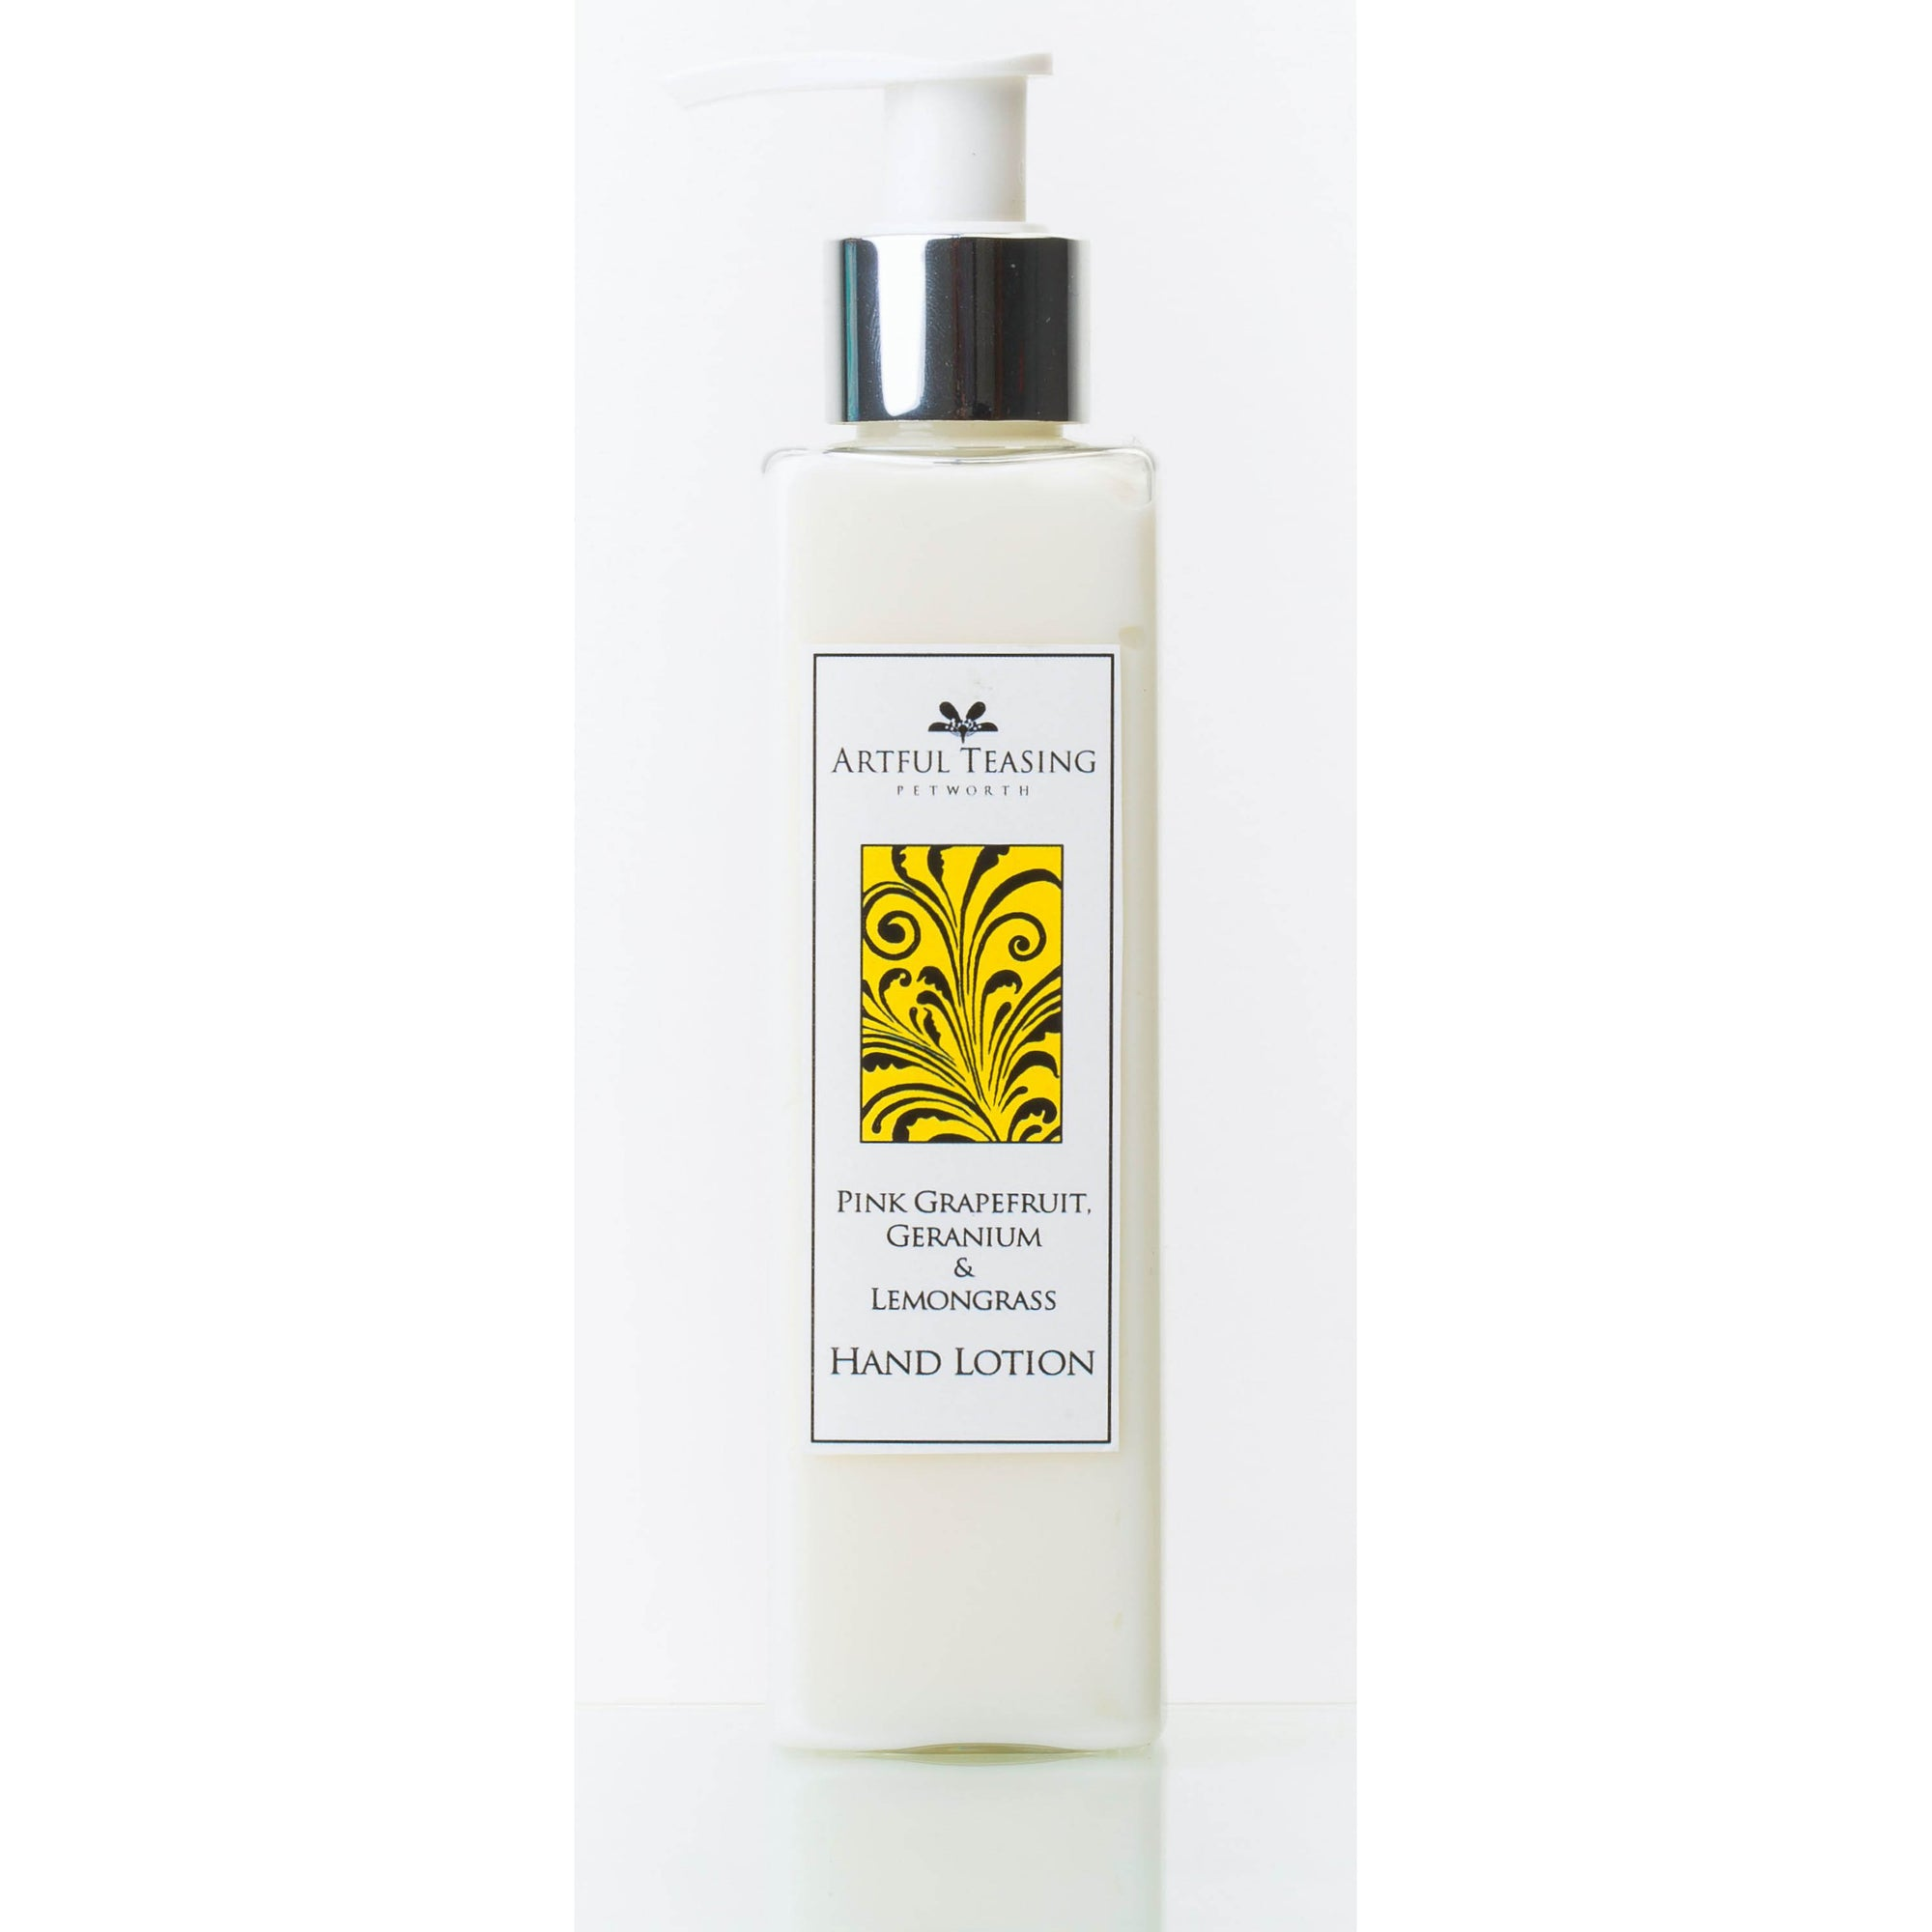 Pink Grapefruit, Geranium & Lemongrass Hand Lotion 200ml